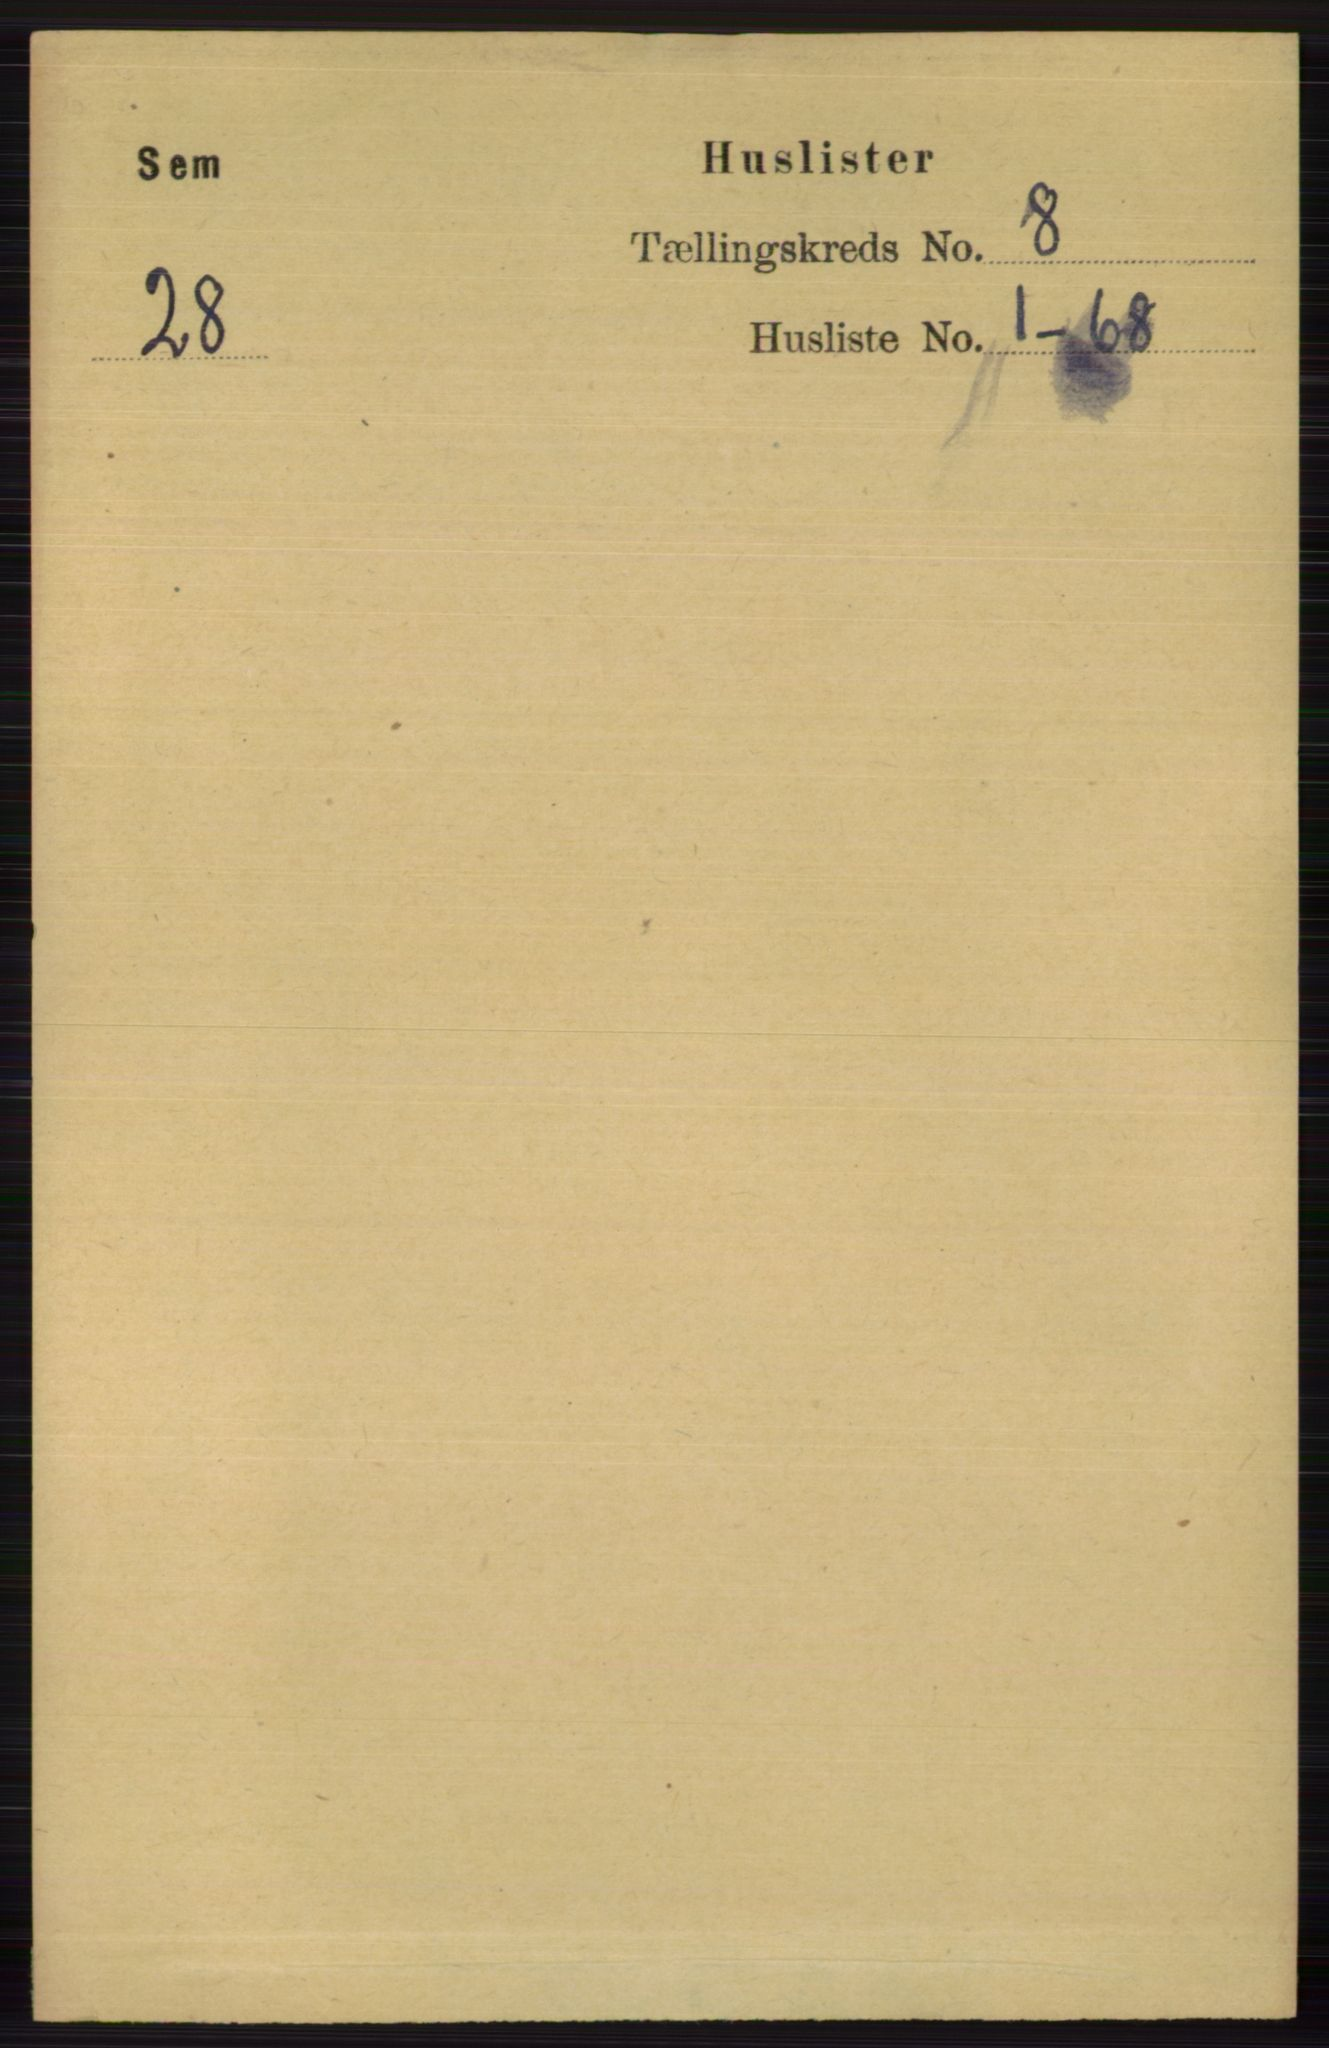 RA, Folketelling 1891 for 0721 Sem herred, 1891, s. 3746